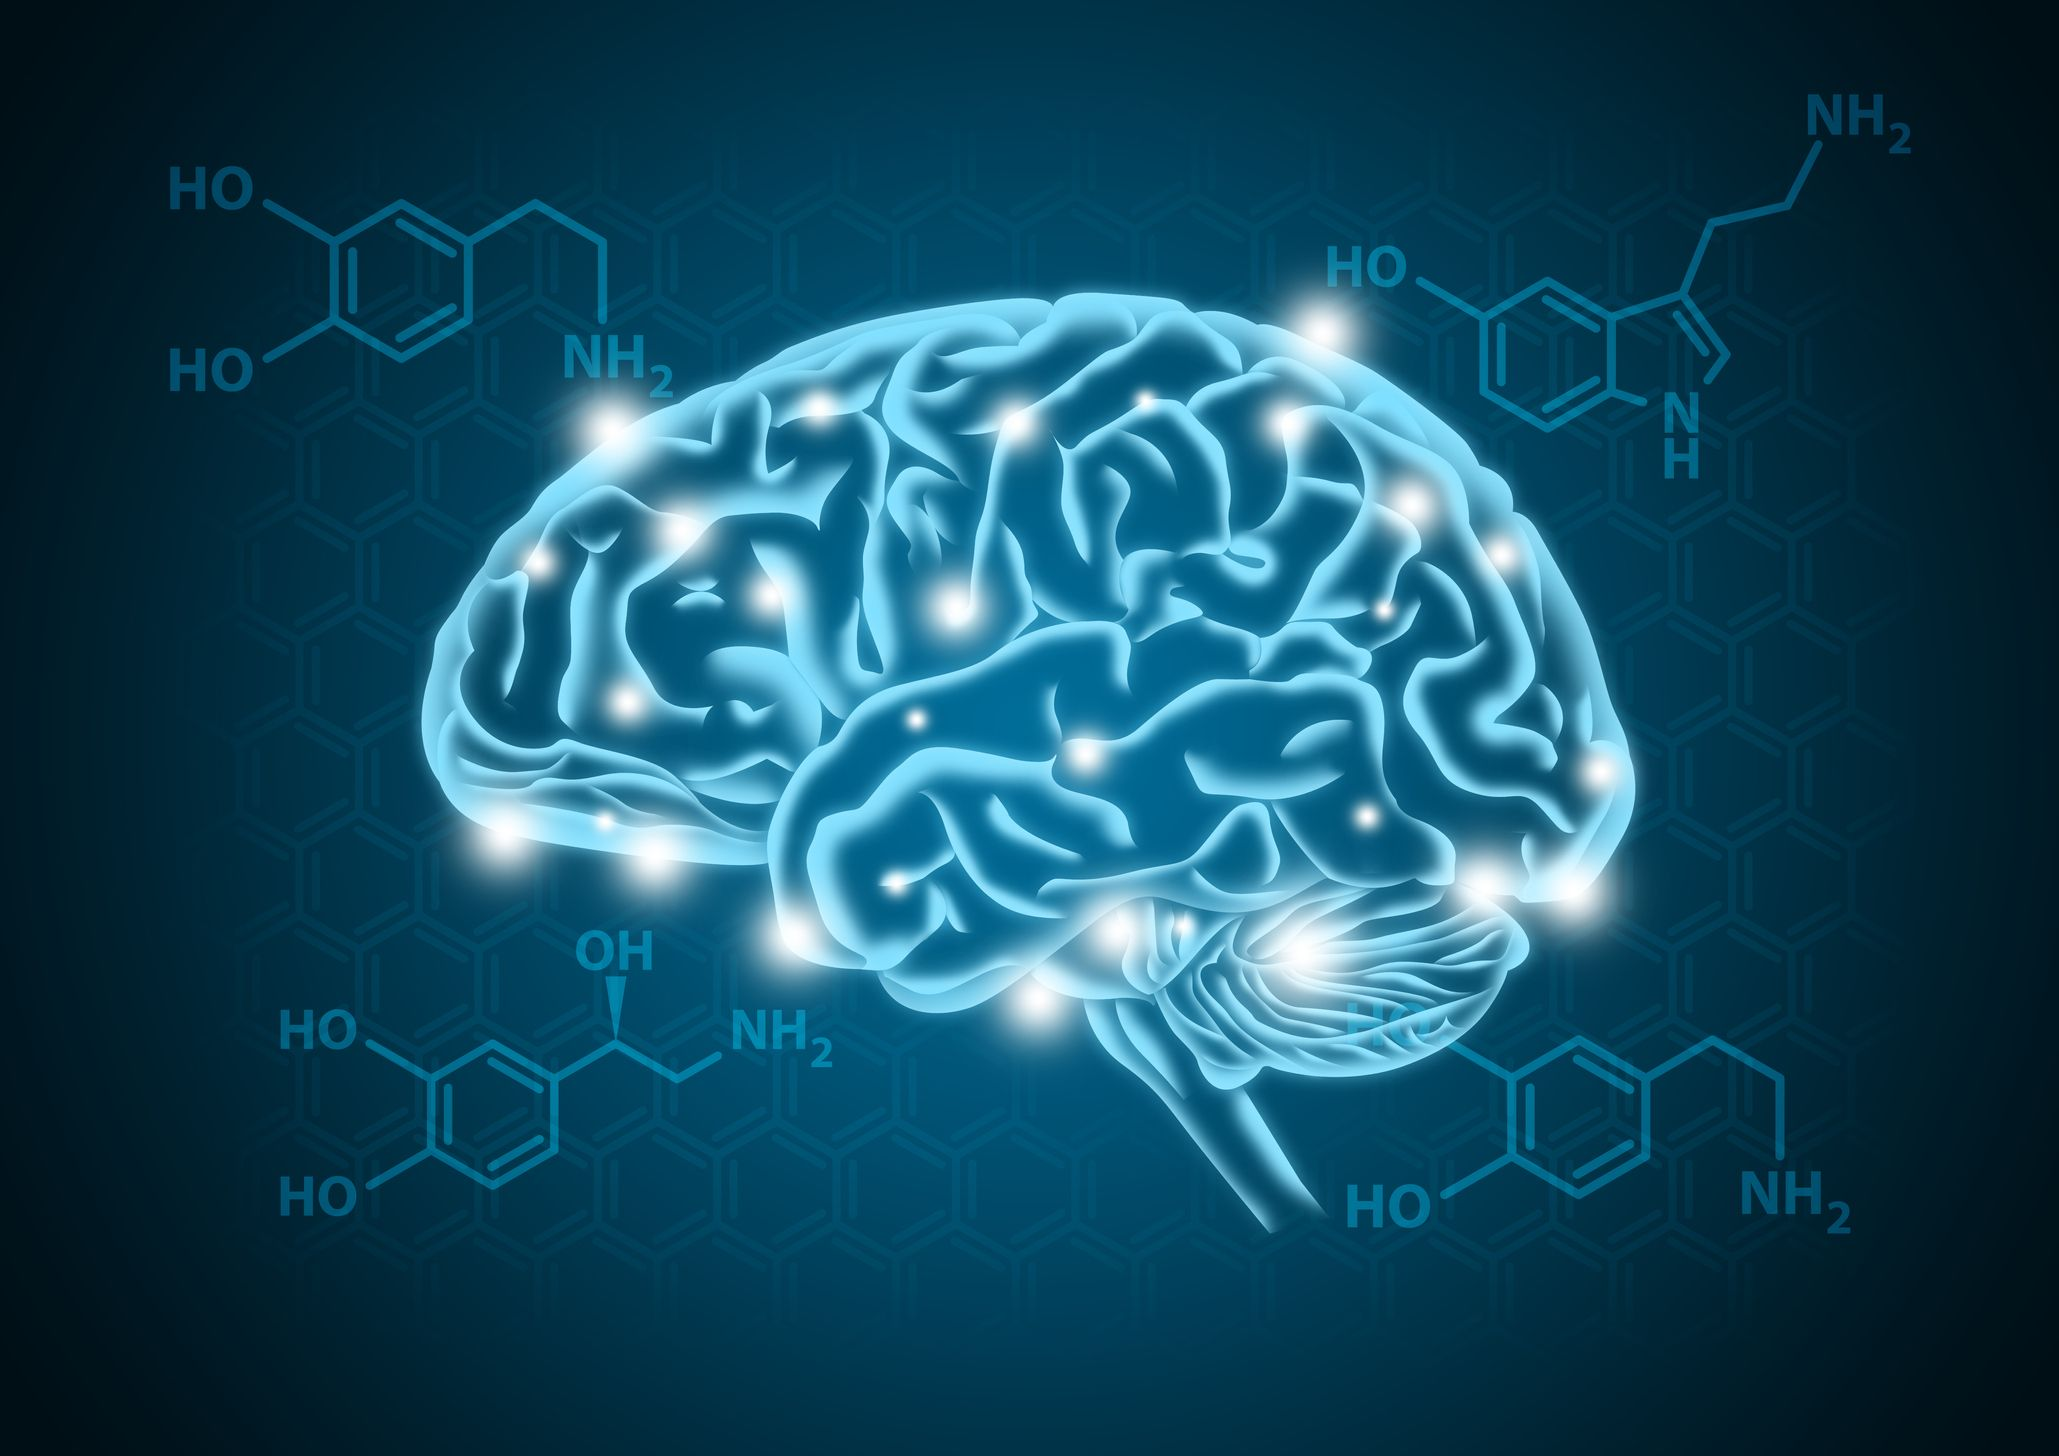 Depiction of a brain and neurotransmitter Dopamine